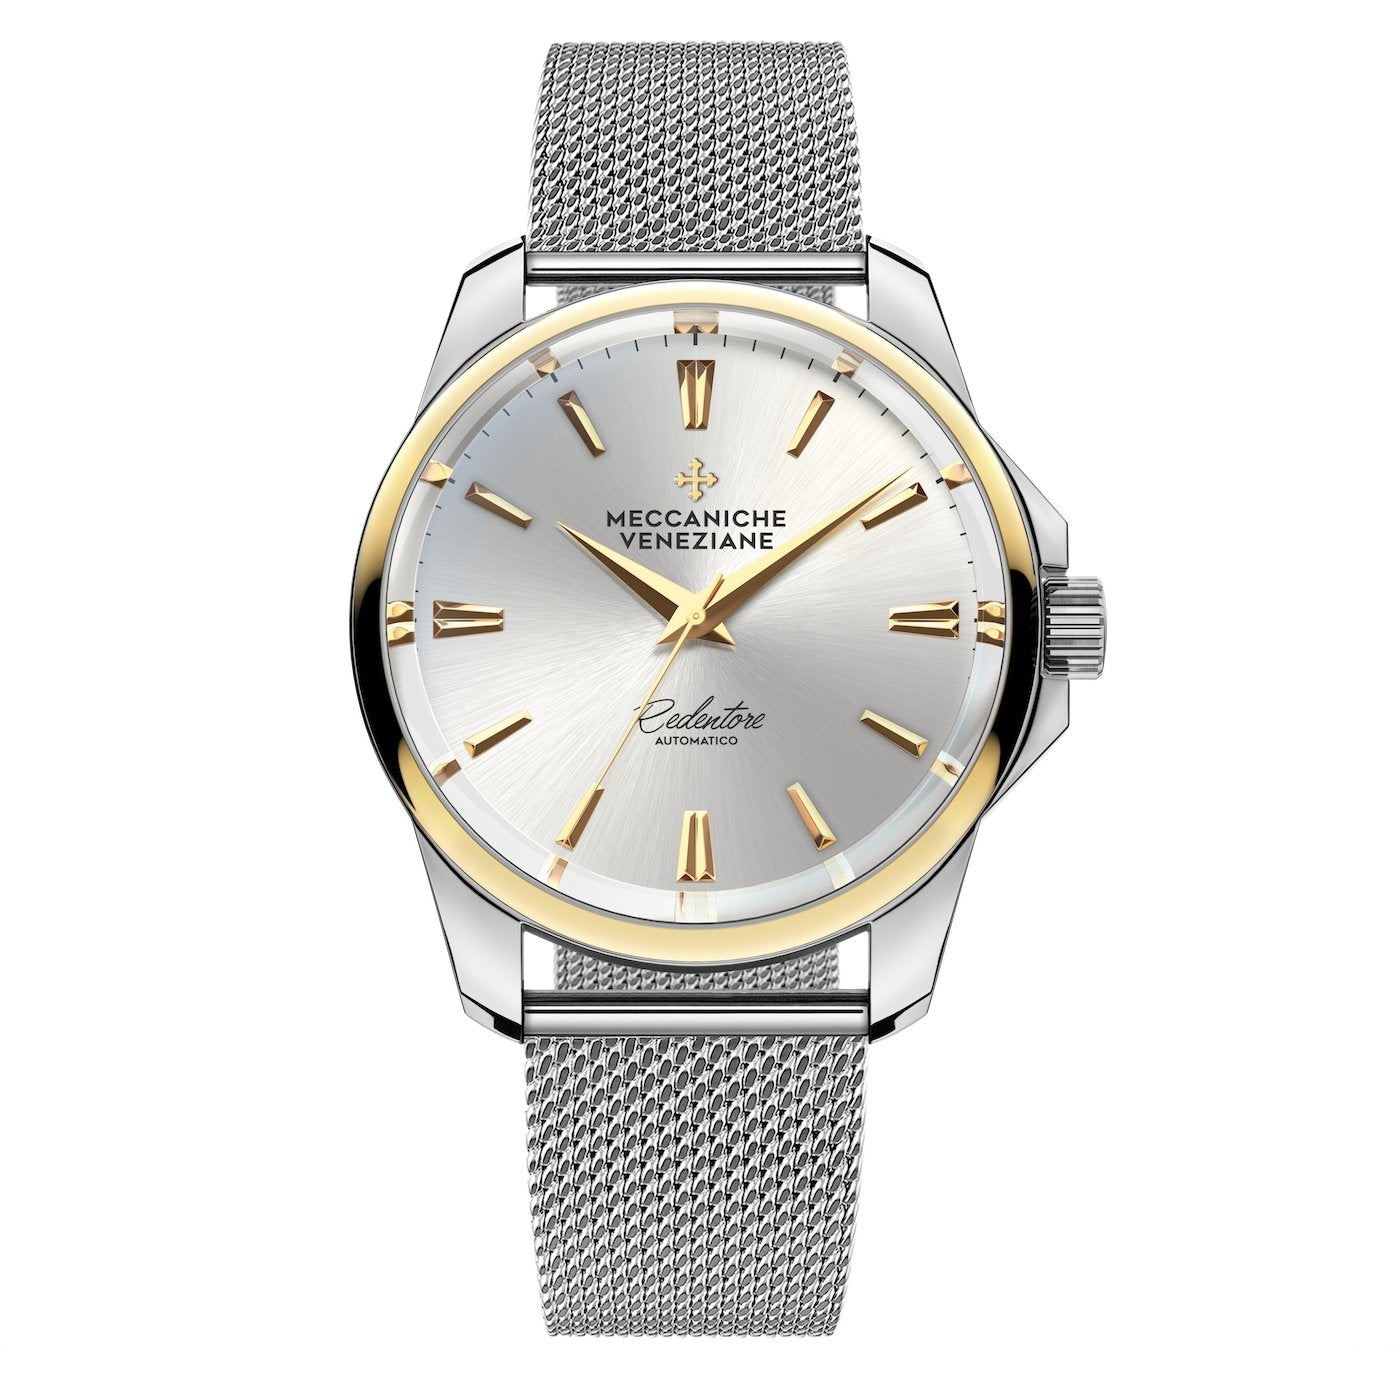 Meccaniche Veneziane Redentore 36 Milanese IP Gold - Watches & Crystals